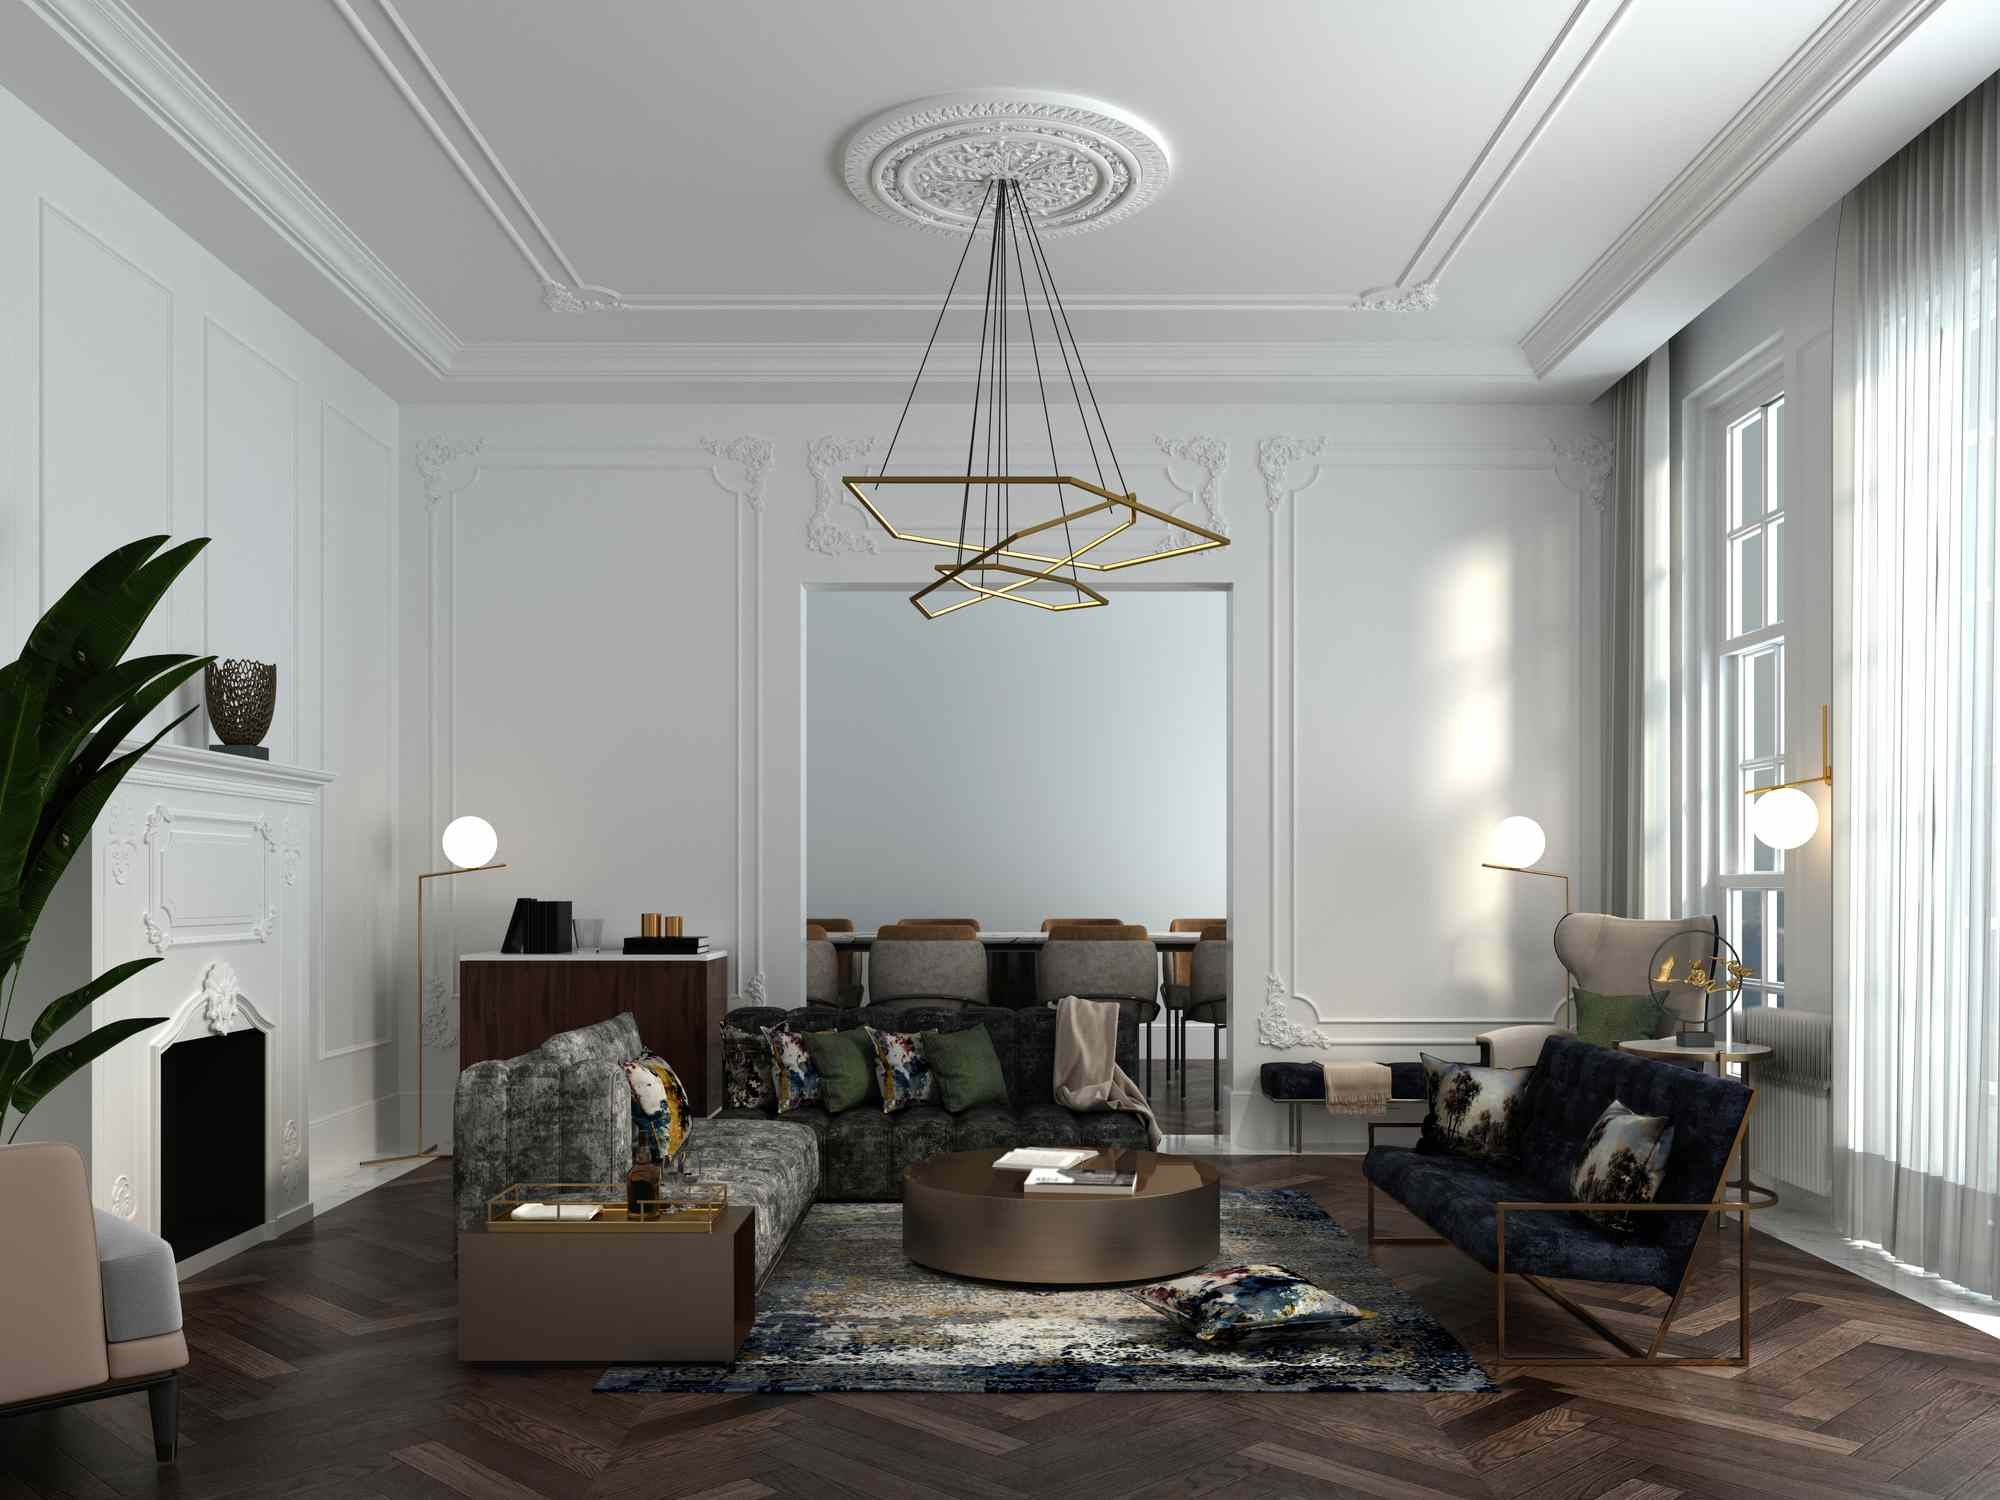 Living Room Lighting Ideas,How To Design An Office